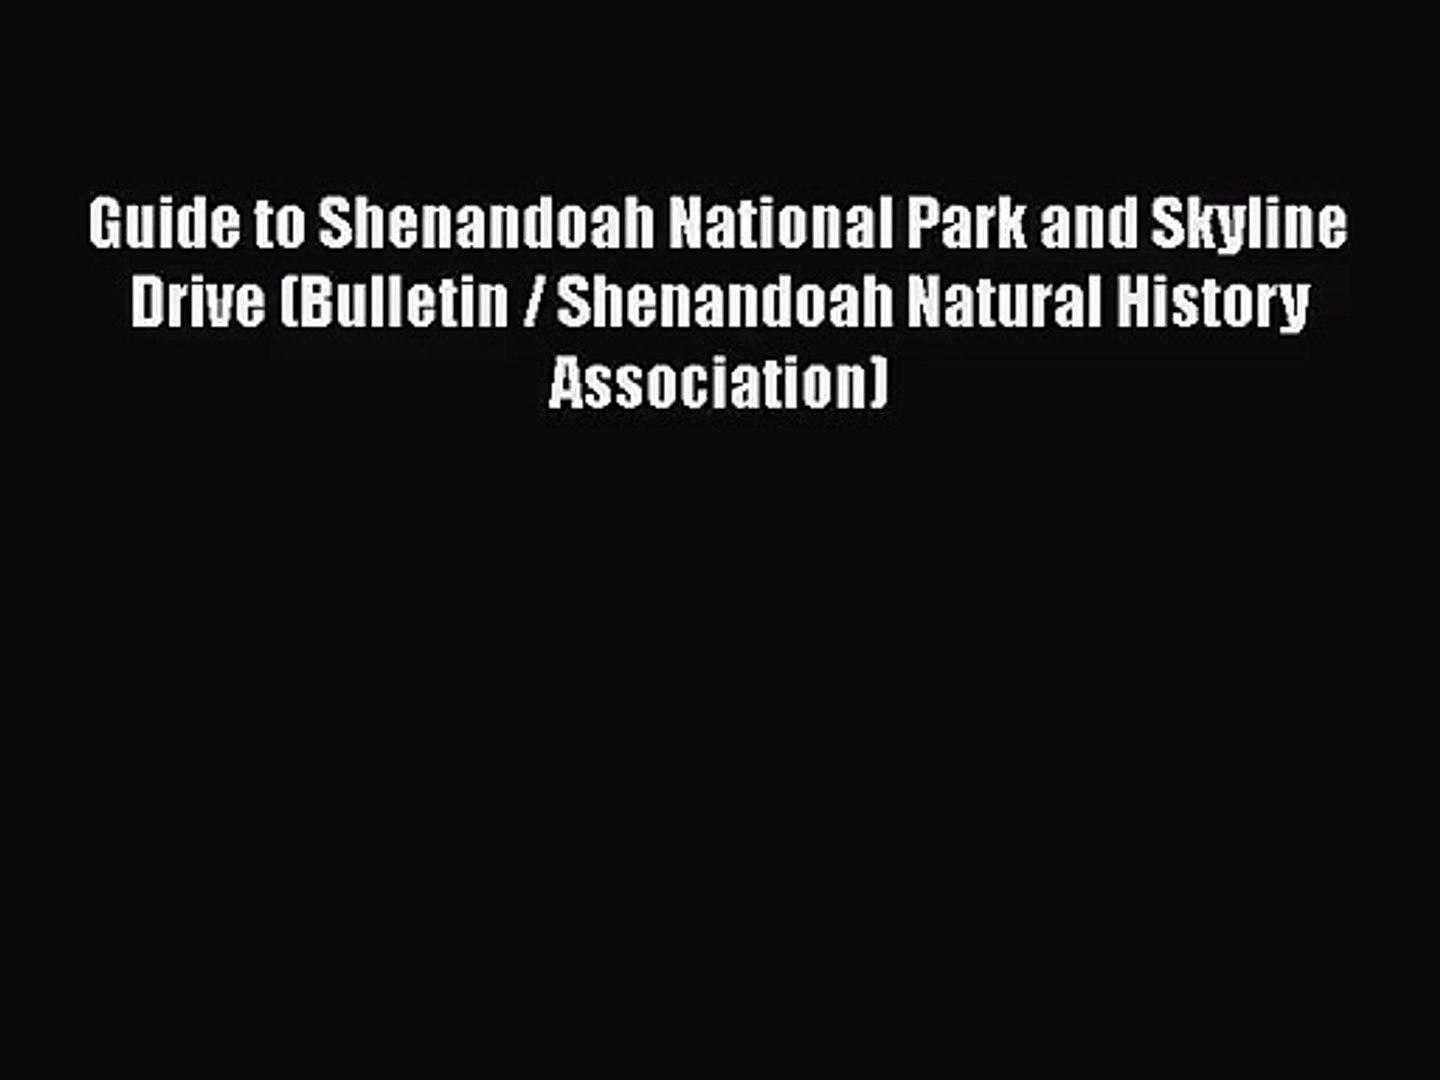 [PDF Download] Guide to Shenandoah National Park and Skyline Drive (Bulletin / Shenandoah Natural